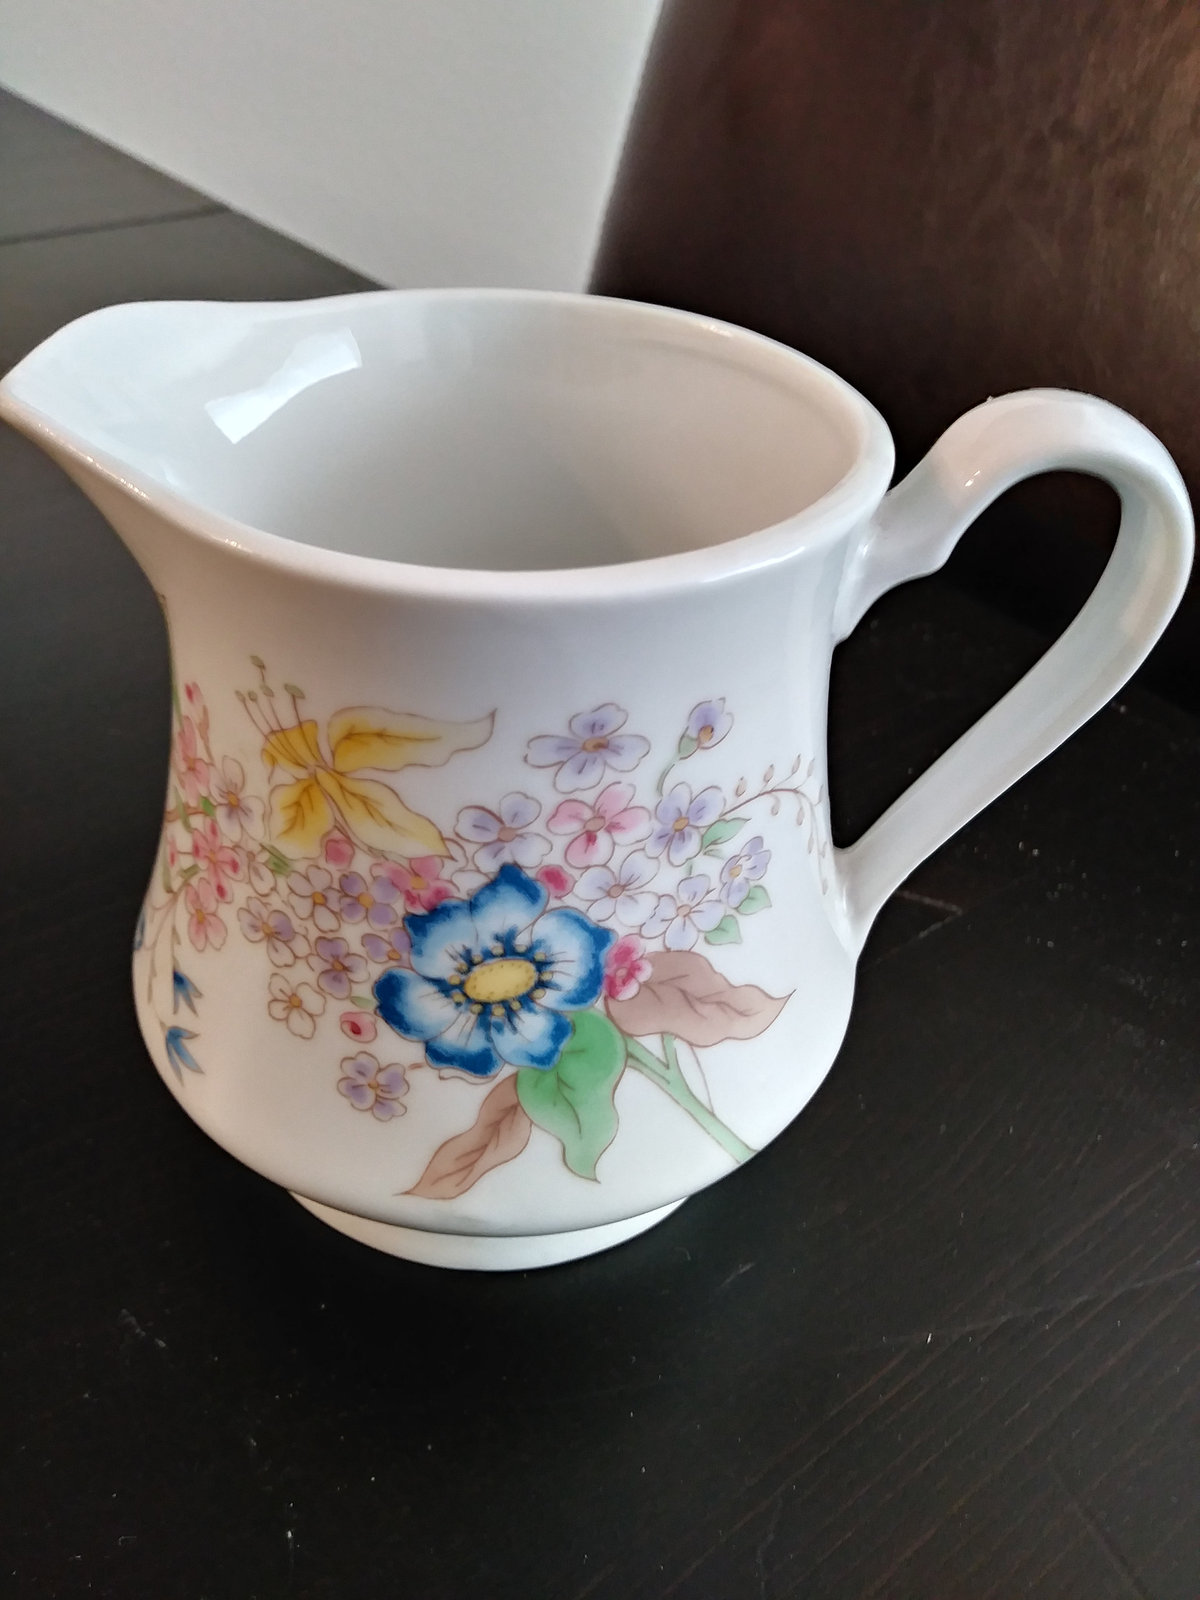 Meadows Flowers Fine Porcelain by Shafford Japan Creamer/Pitcher